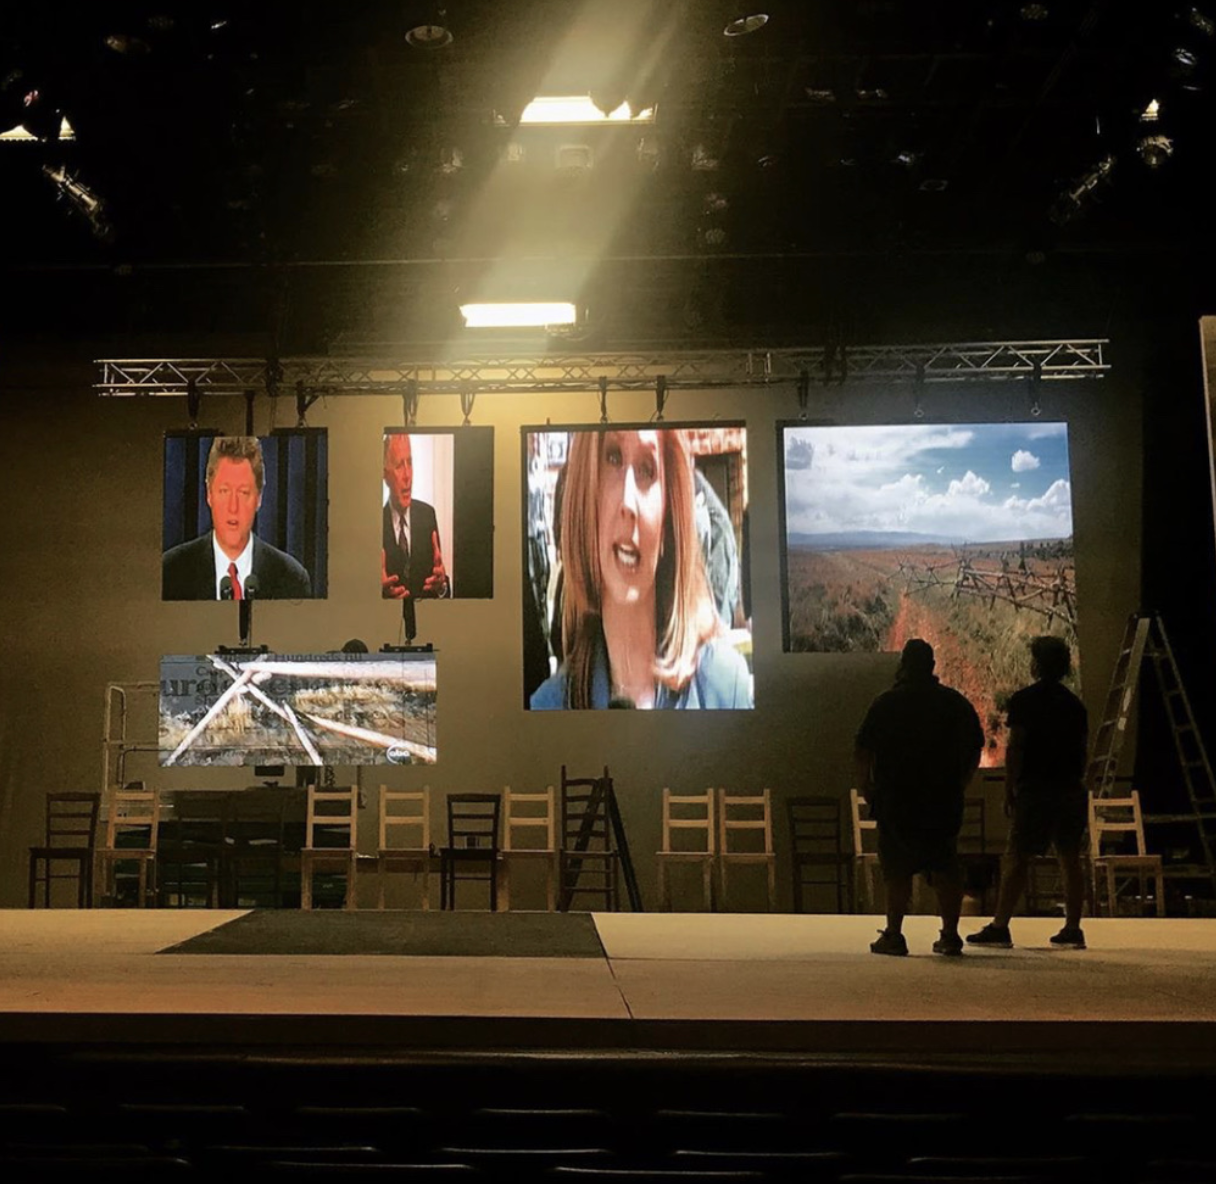 A NEWS SENSATION: The set depicted the true spirit of the play, putting the media on a literal platform. Photo by Mr. Marshall